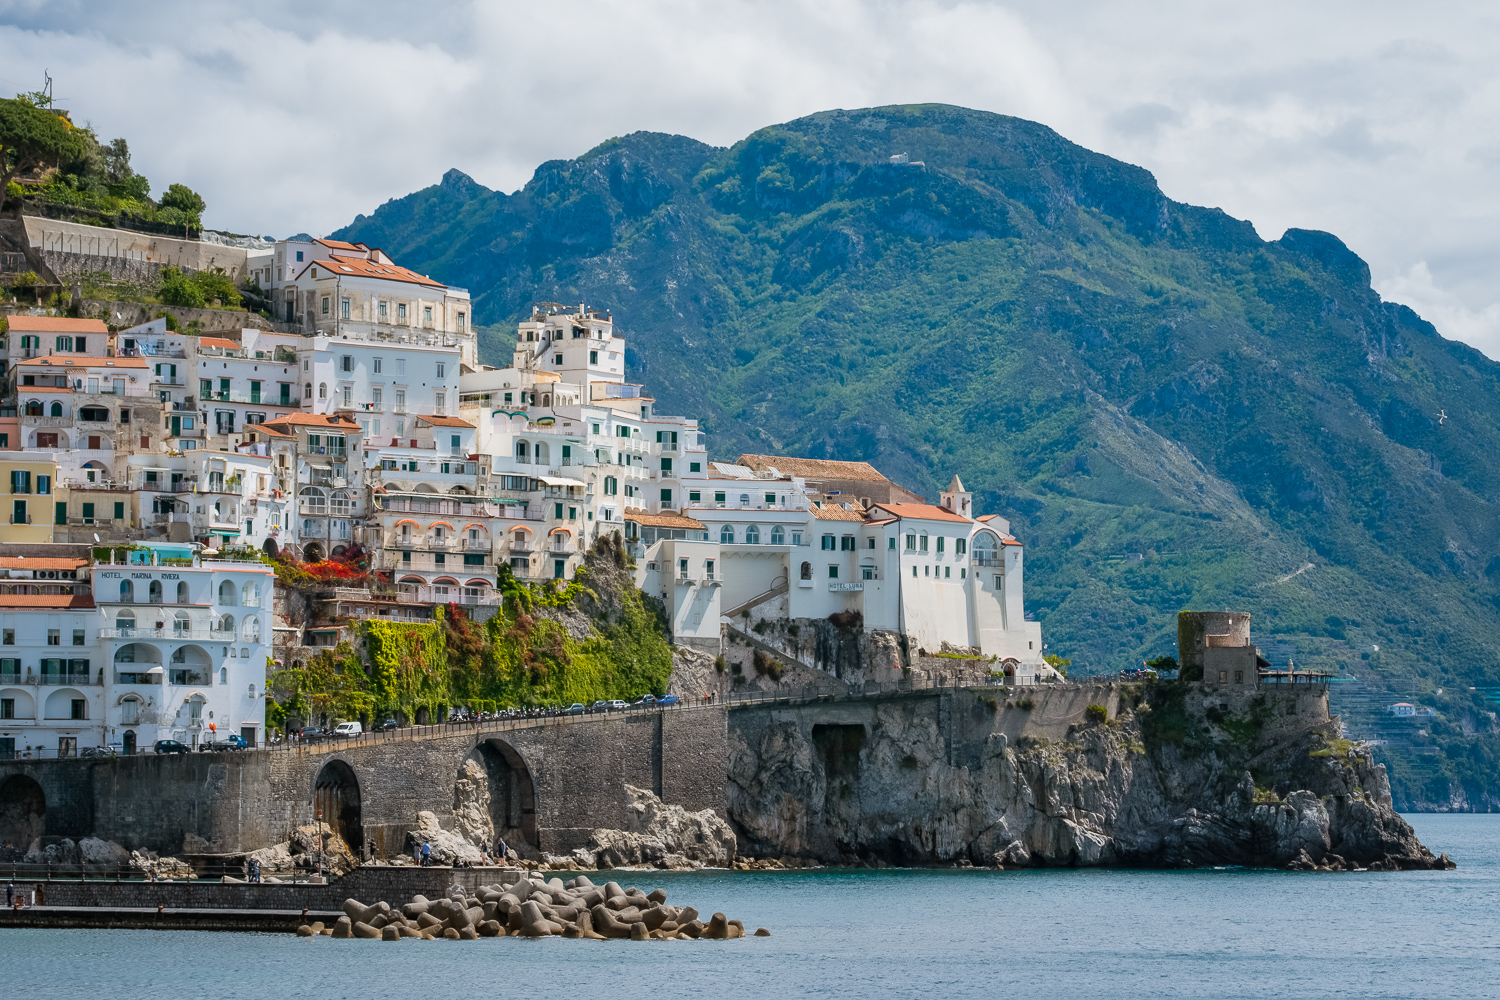 Beautiful view of seaside city Amalfi in the province of Salerno, the region of Campania, Amalfi Coast, Costiera Amalfitana, Italy